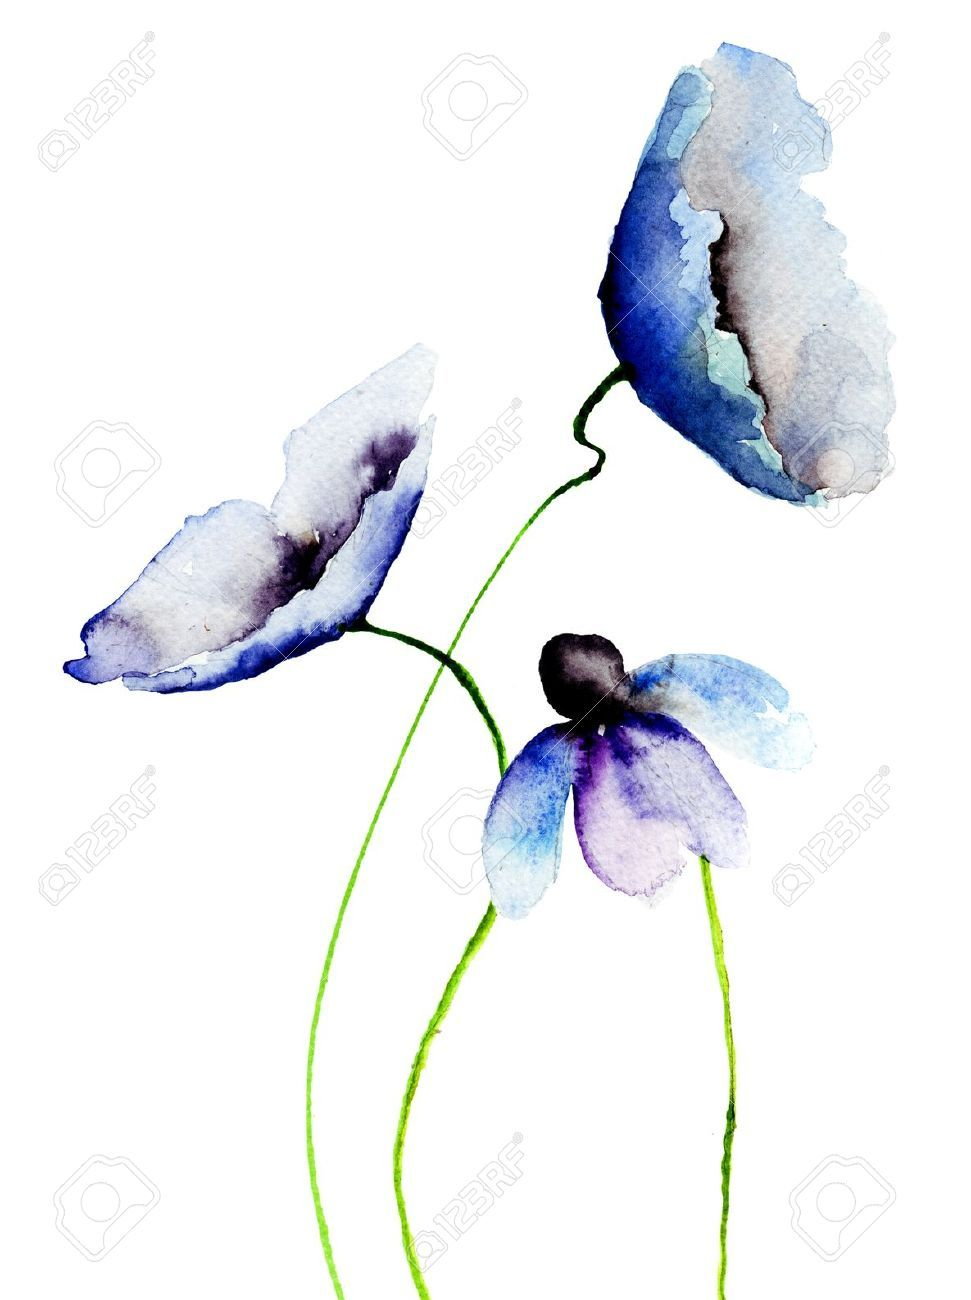 Watercolor Painting Beautiful Blue Flowers Watercolor Painting